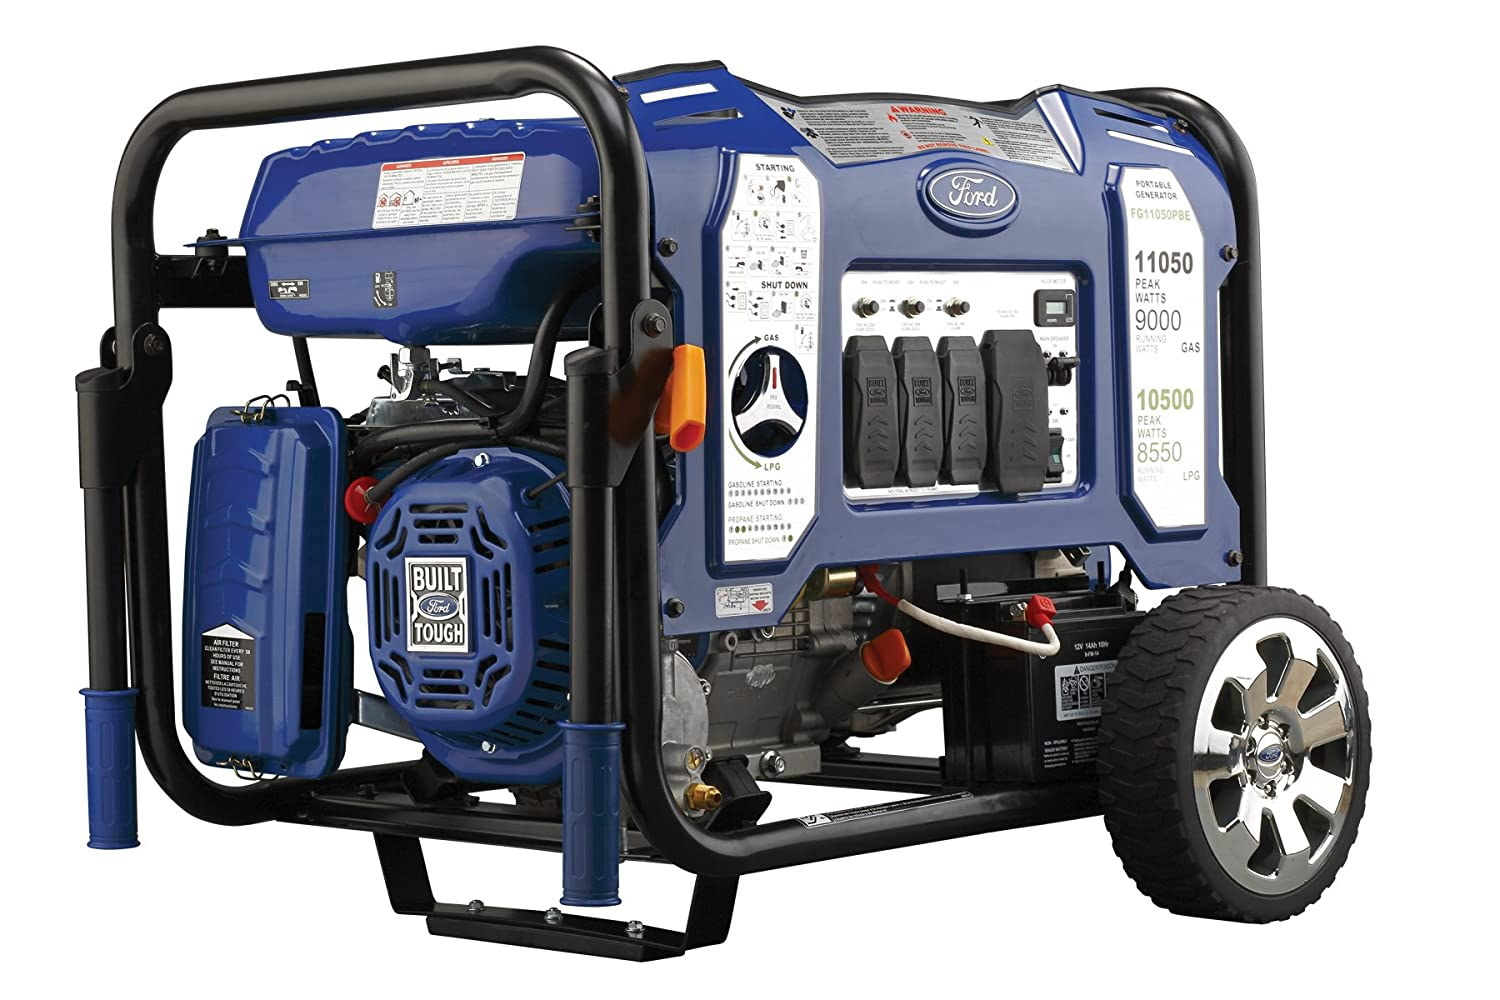 Ford portable generator